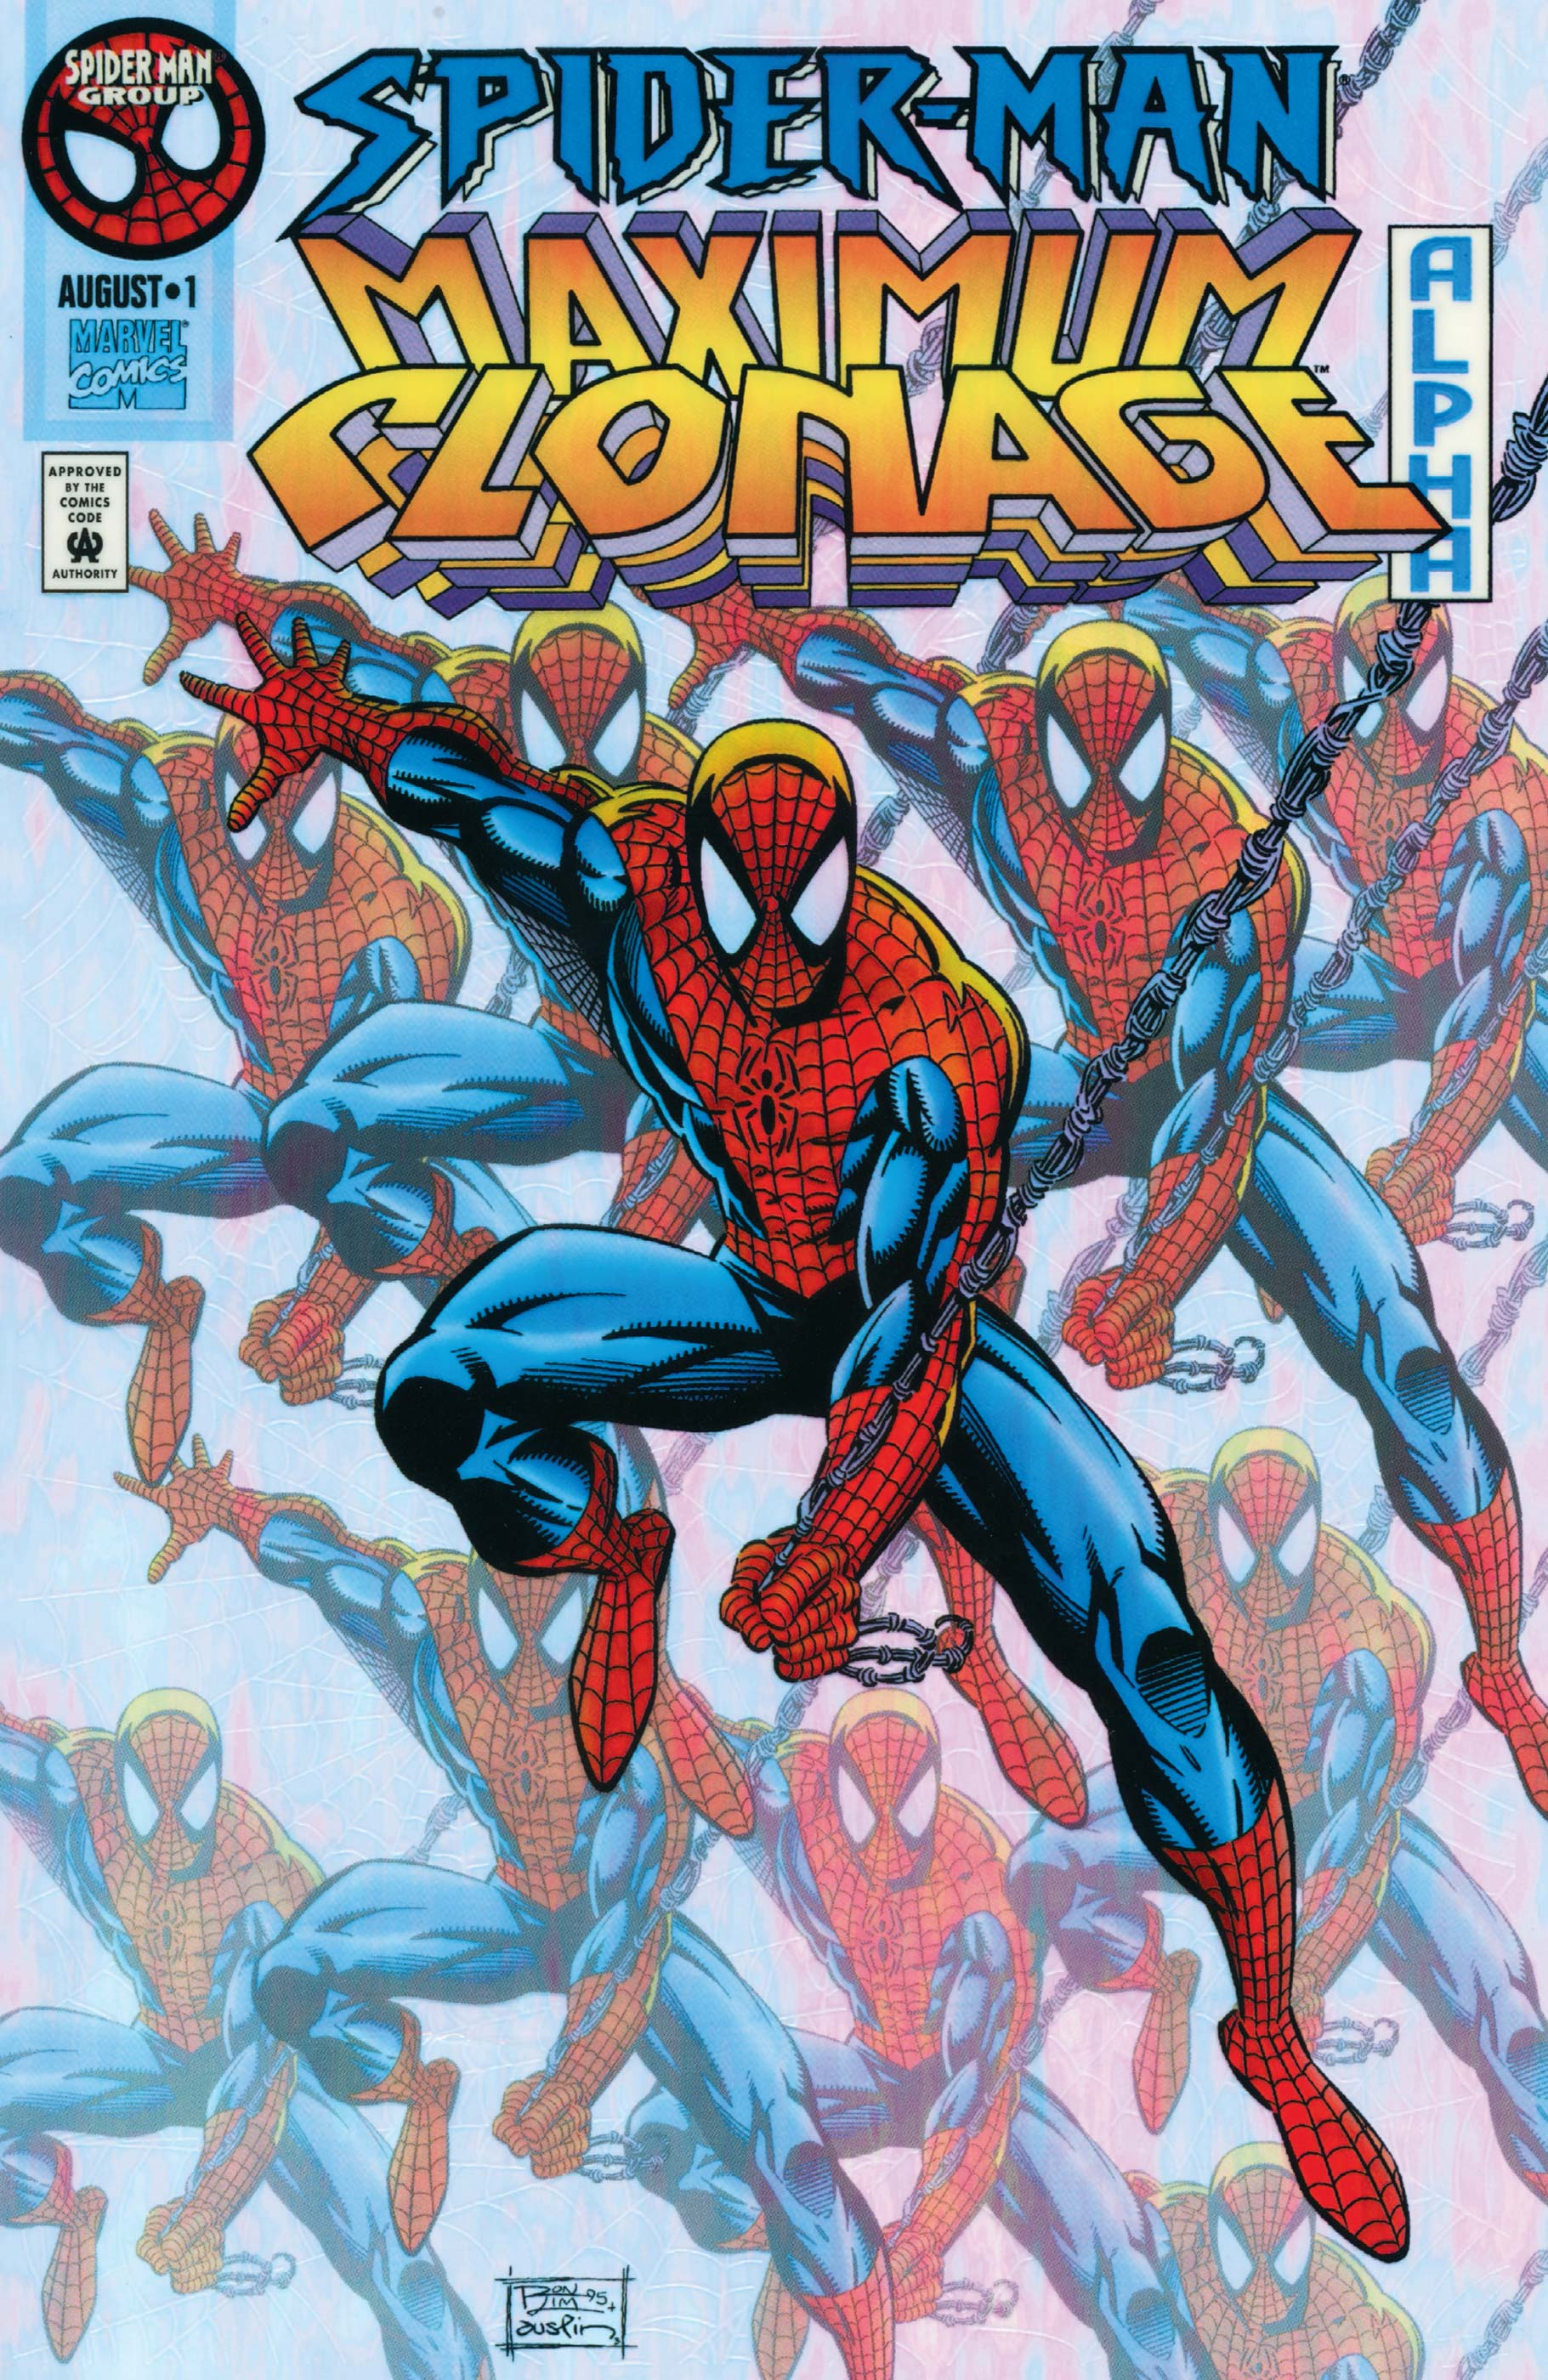 Spider-Man: Maximum Clonage Alpha (1995) #1